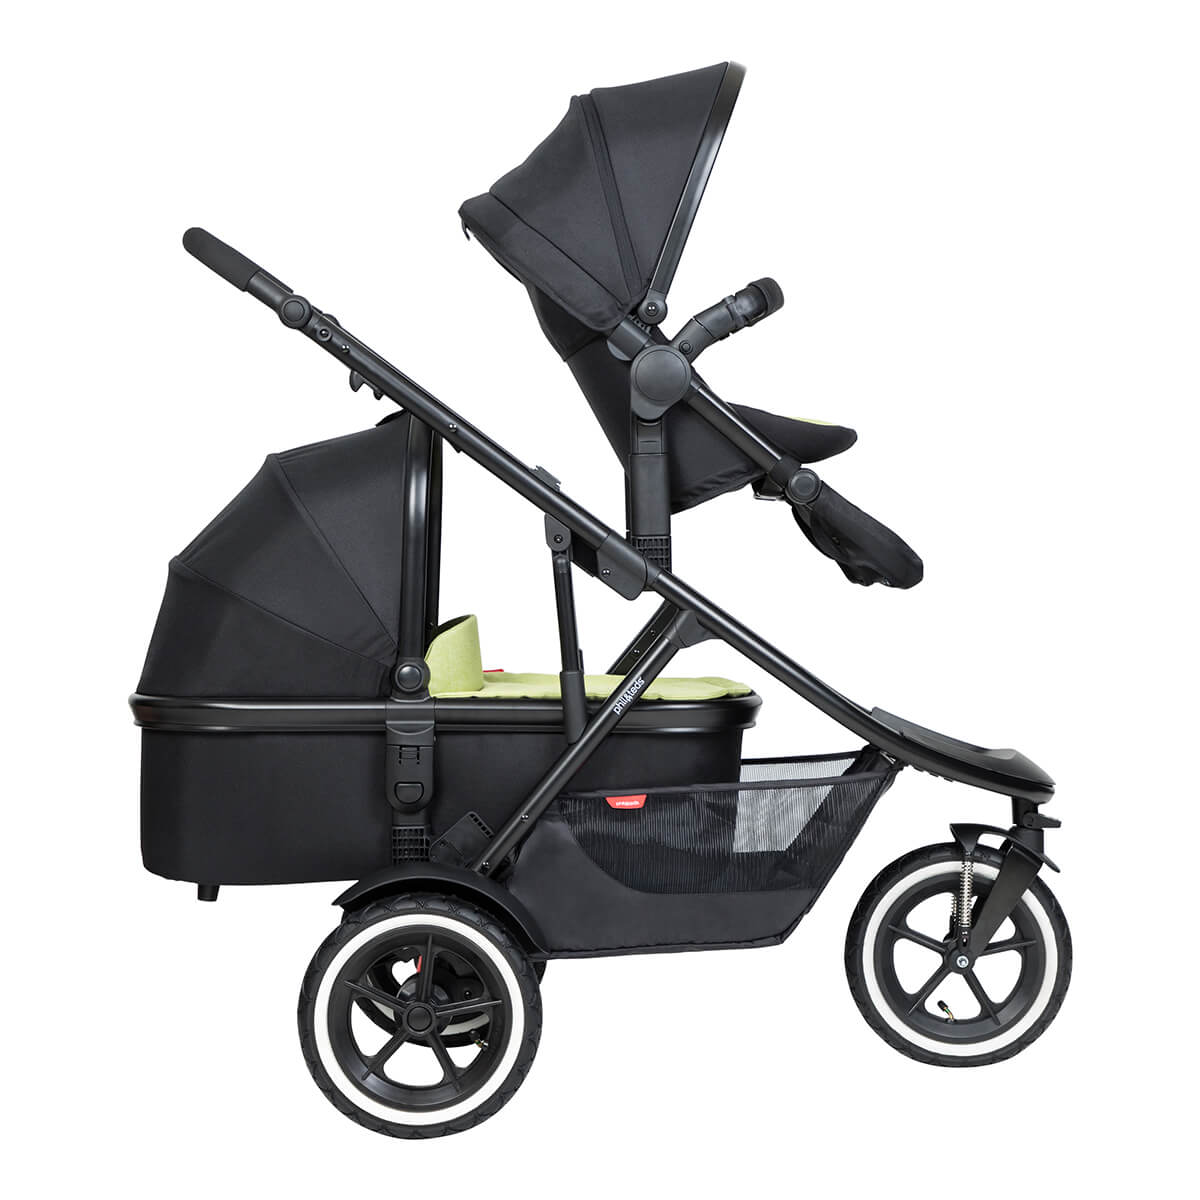 https://cdn.accentuate.io/4509867475041/19793939726506/philteds-sport-buggy-with-double-kit-extended-clip-and-snug-carrycot-side-view-v1626485332781.jpg?1200x1200